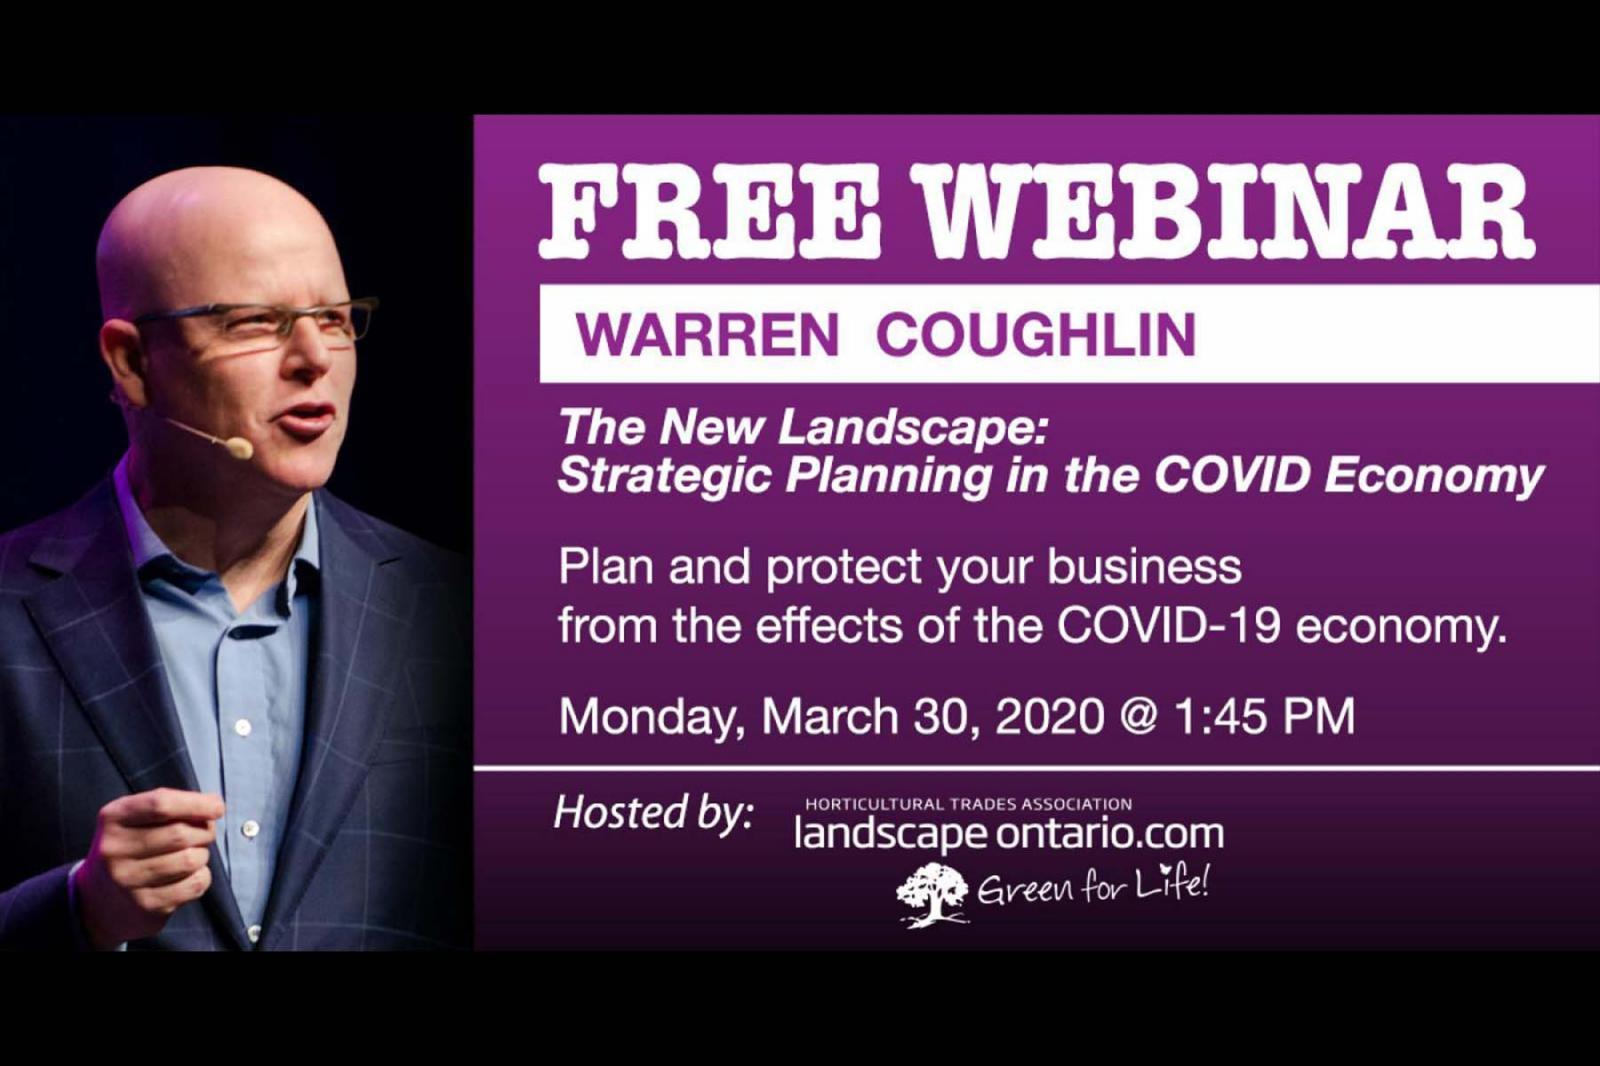 Strategic Planning in the COVID Economy with Warren Coughlin